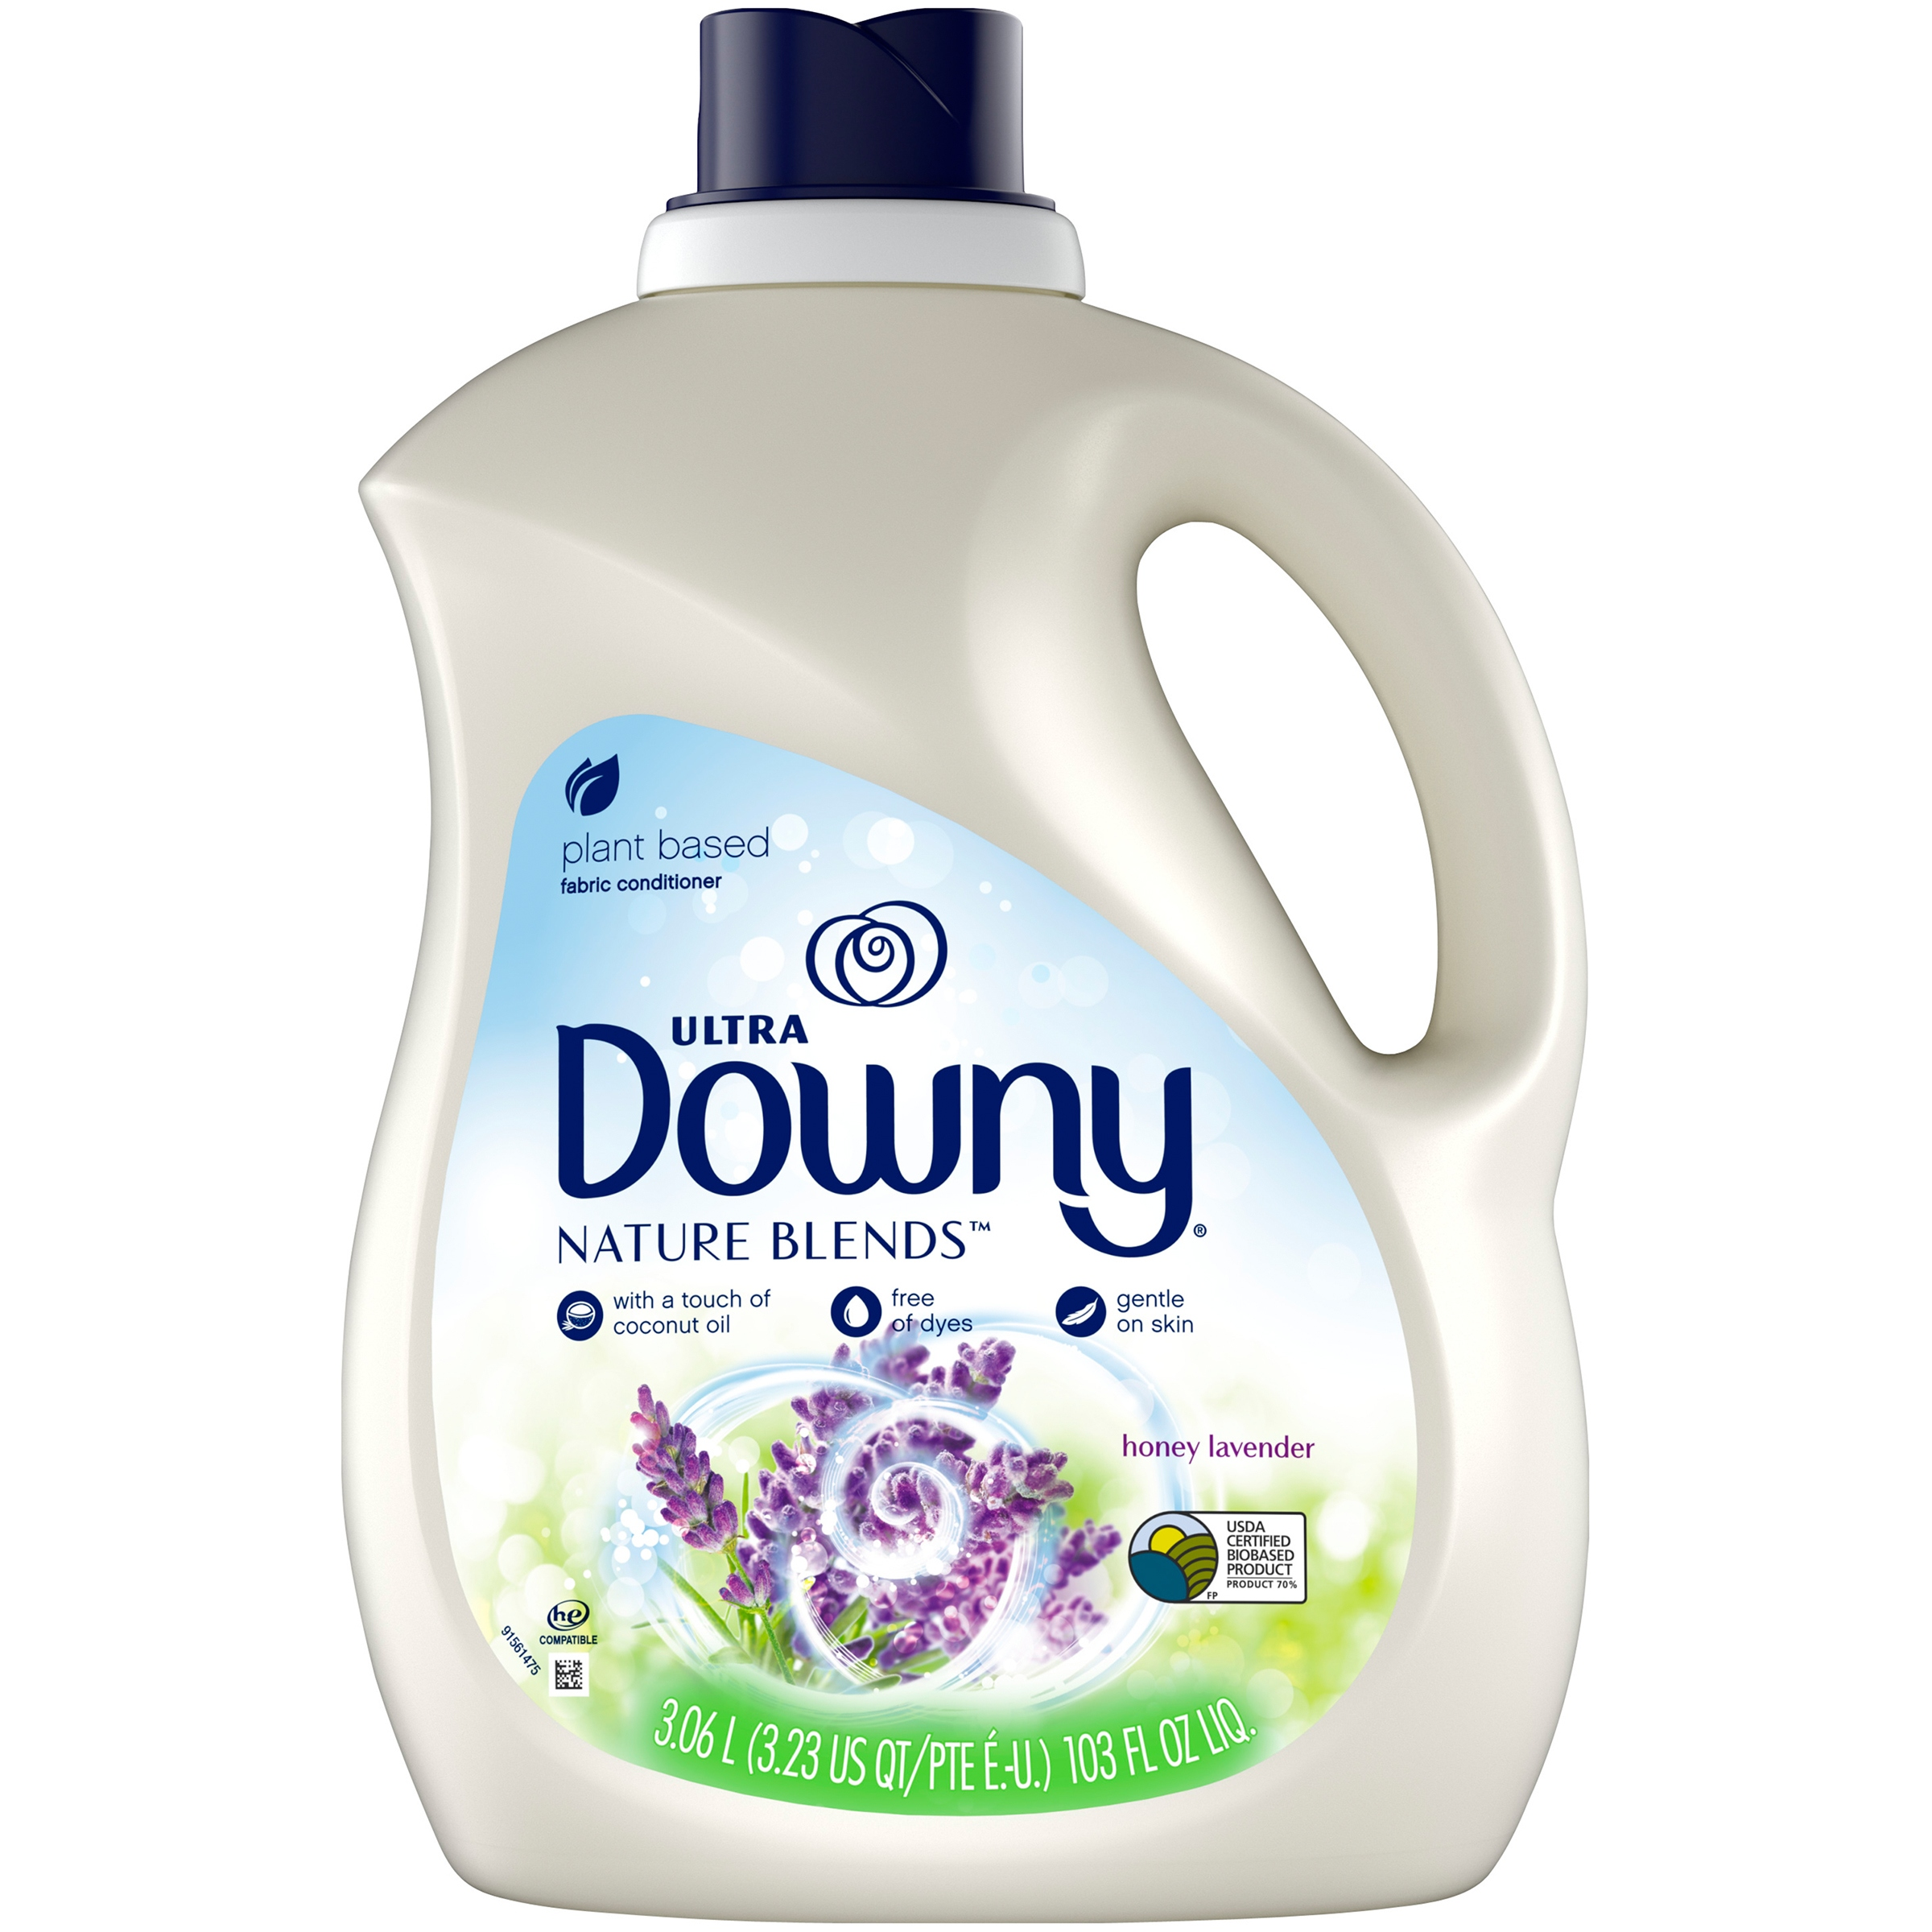 Downy Nature Blends Liquid Fabric Conditioner (Fabric Softener), Honey Lavender, 120 Loads 103 fl oz